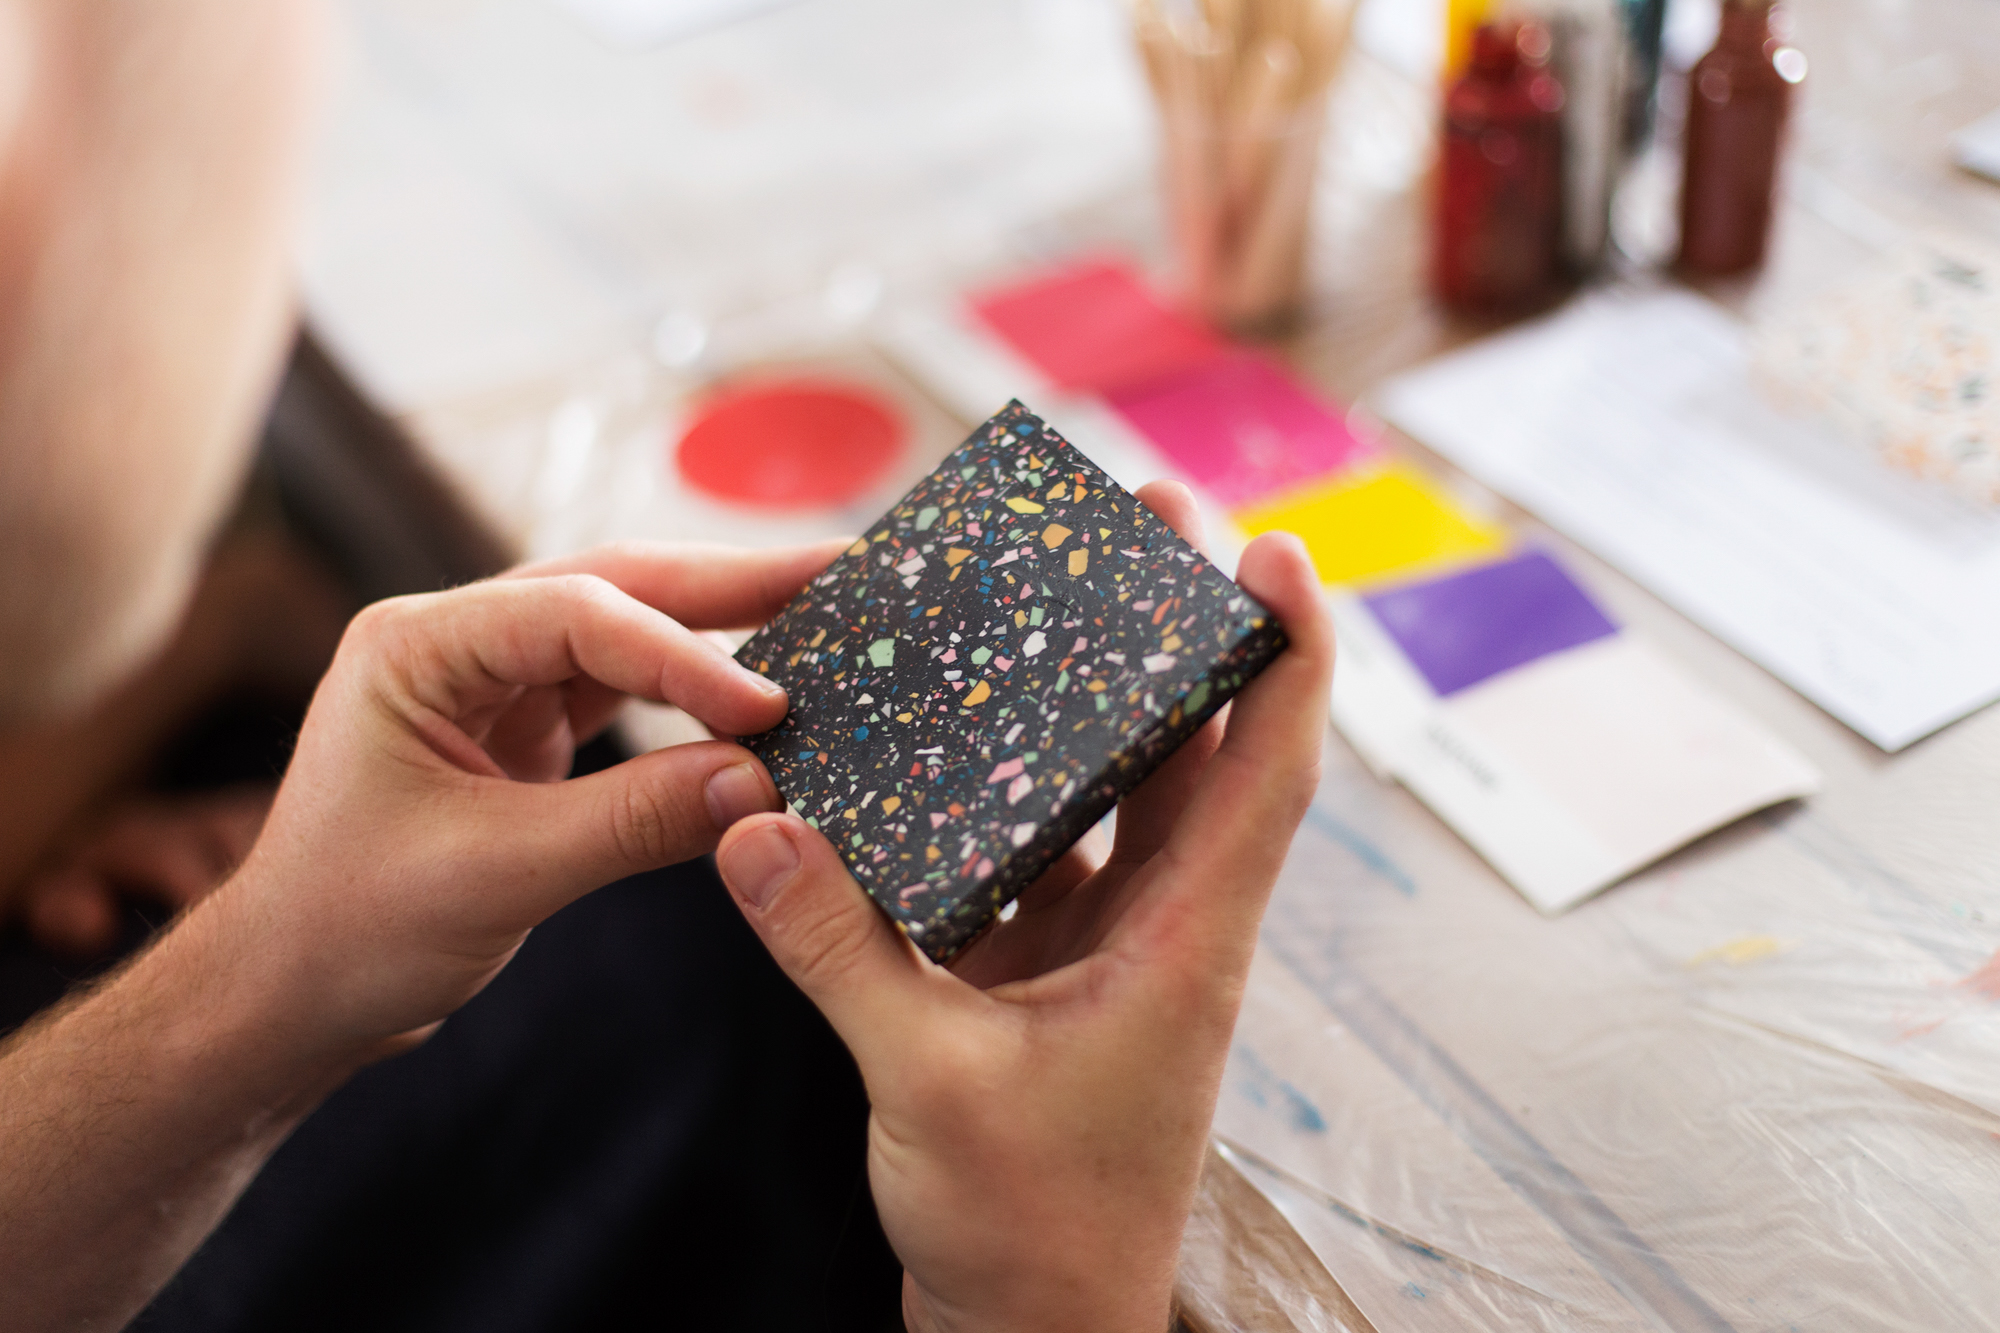 Beautiful Jesmonite Terrazzo tiles made at creative workshop art and craft class at the Forge Bristol